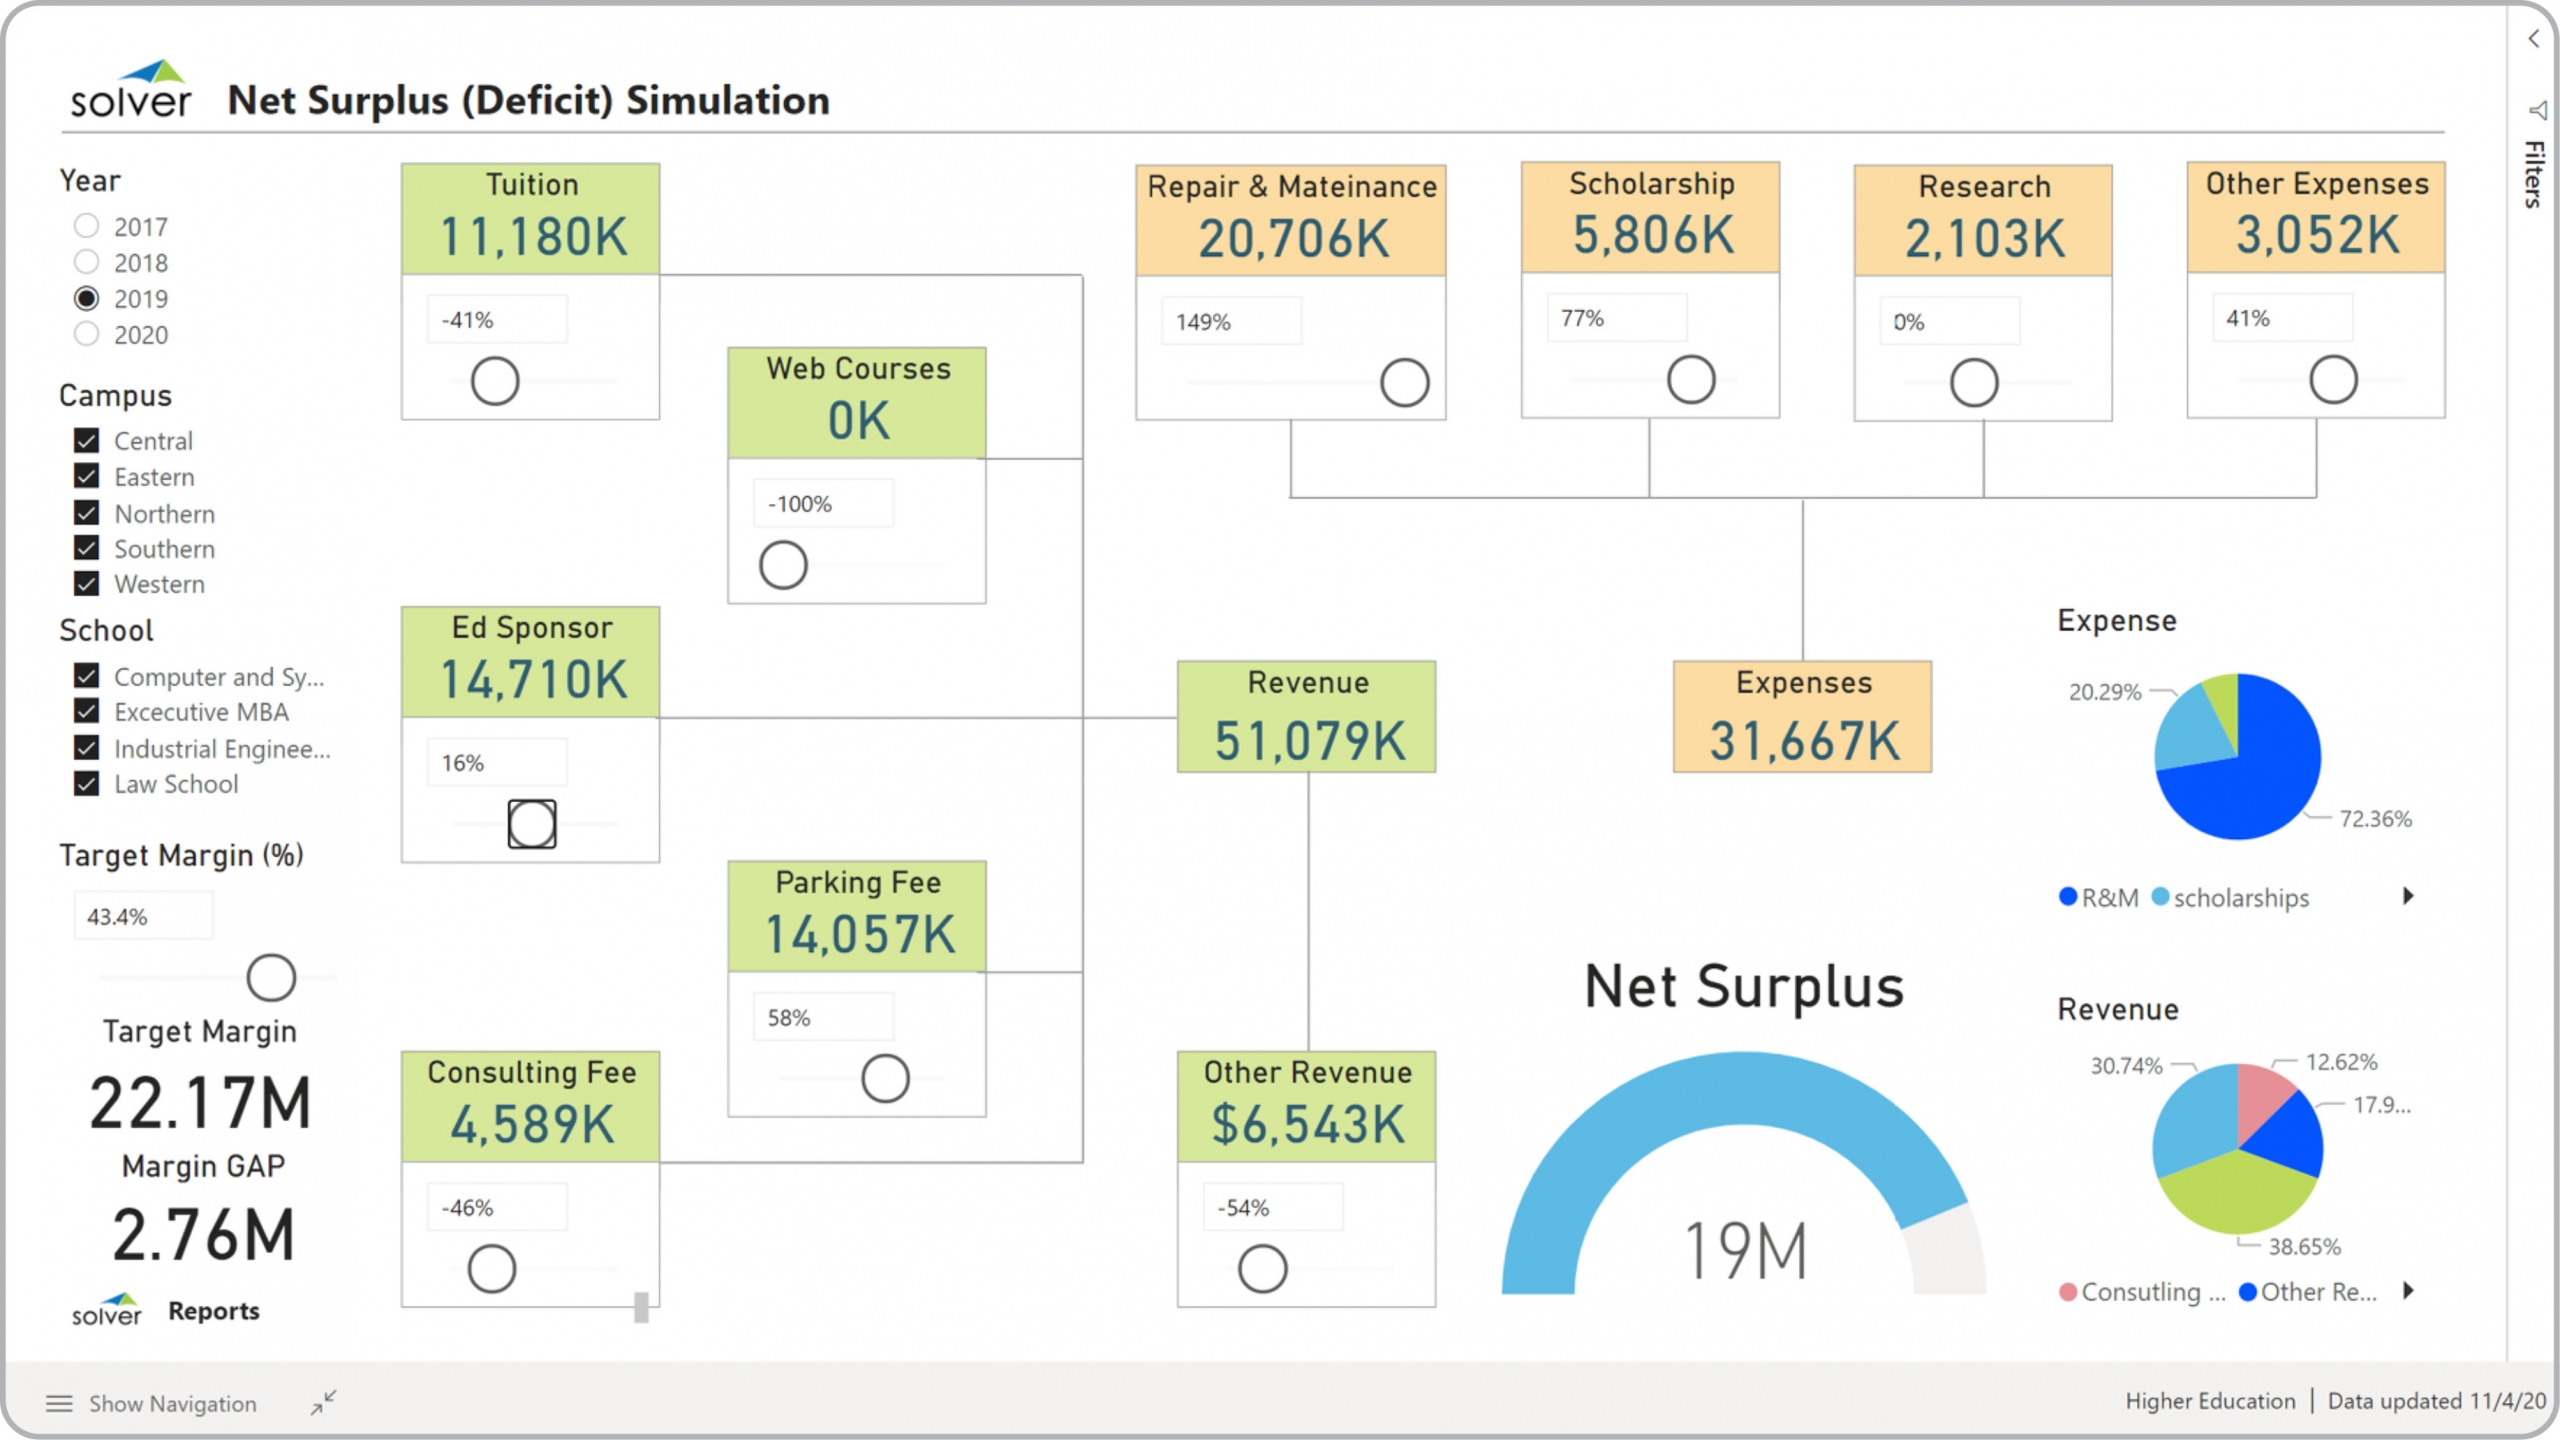 Example of a Financial Simulation Dashboard for Higher Education Institutions